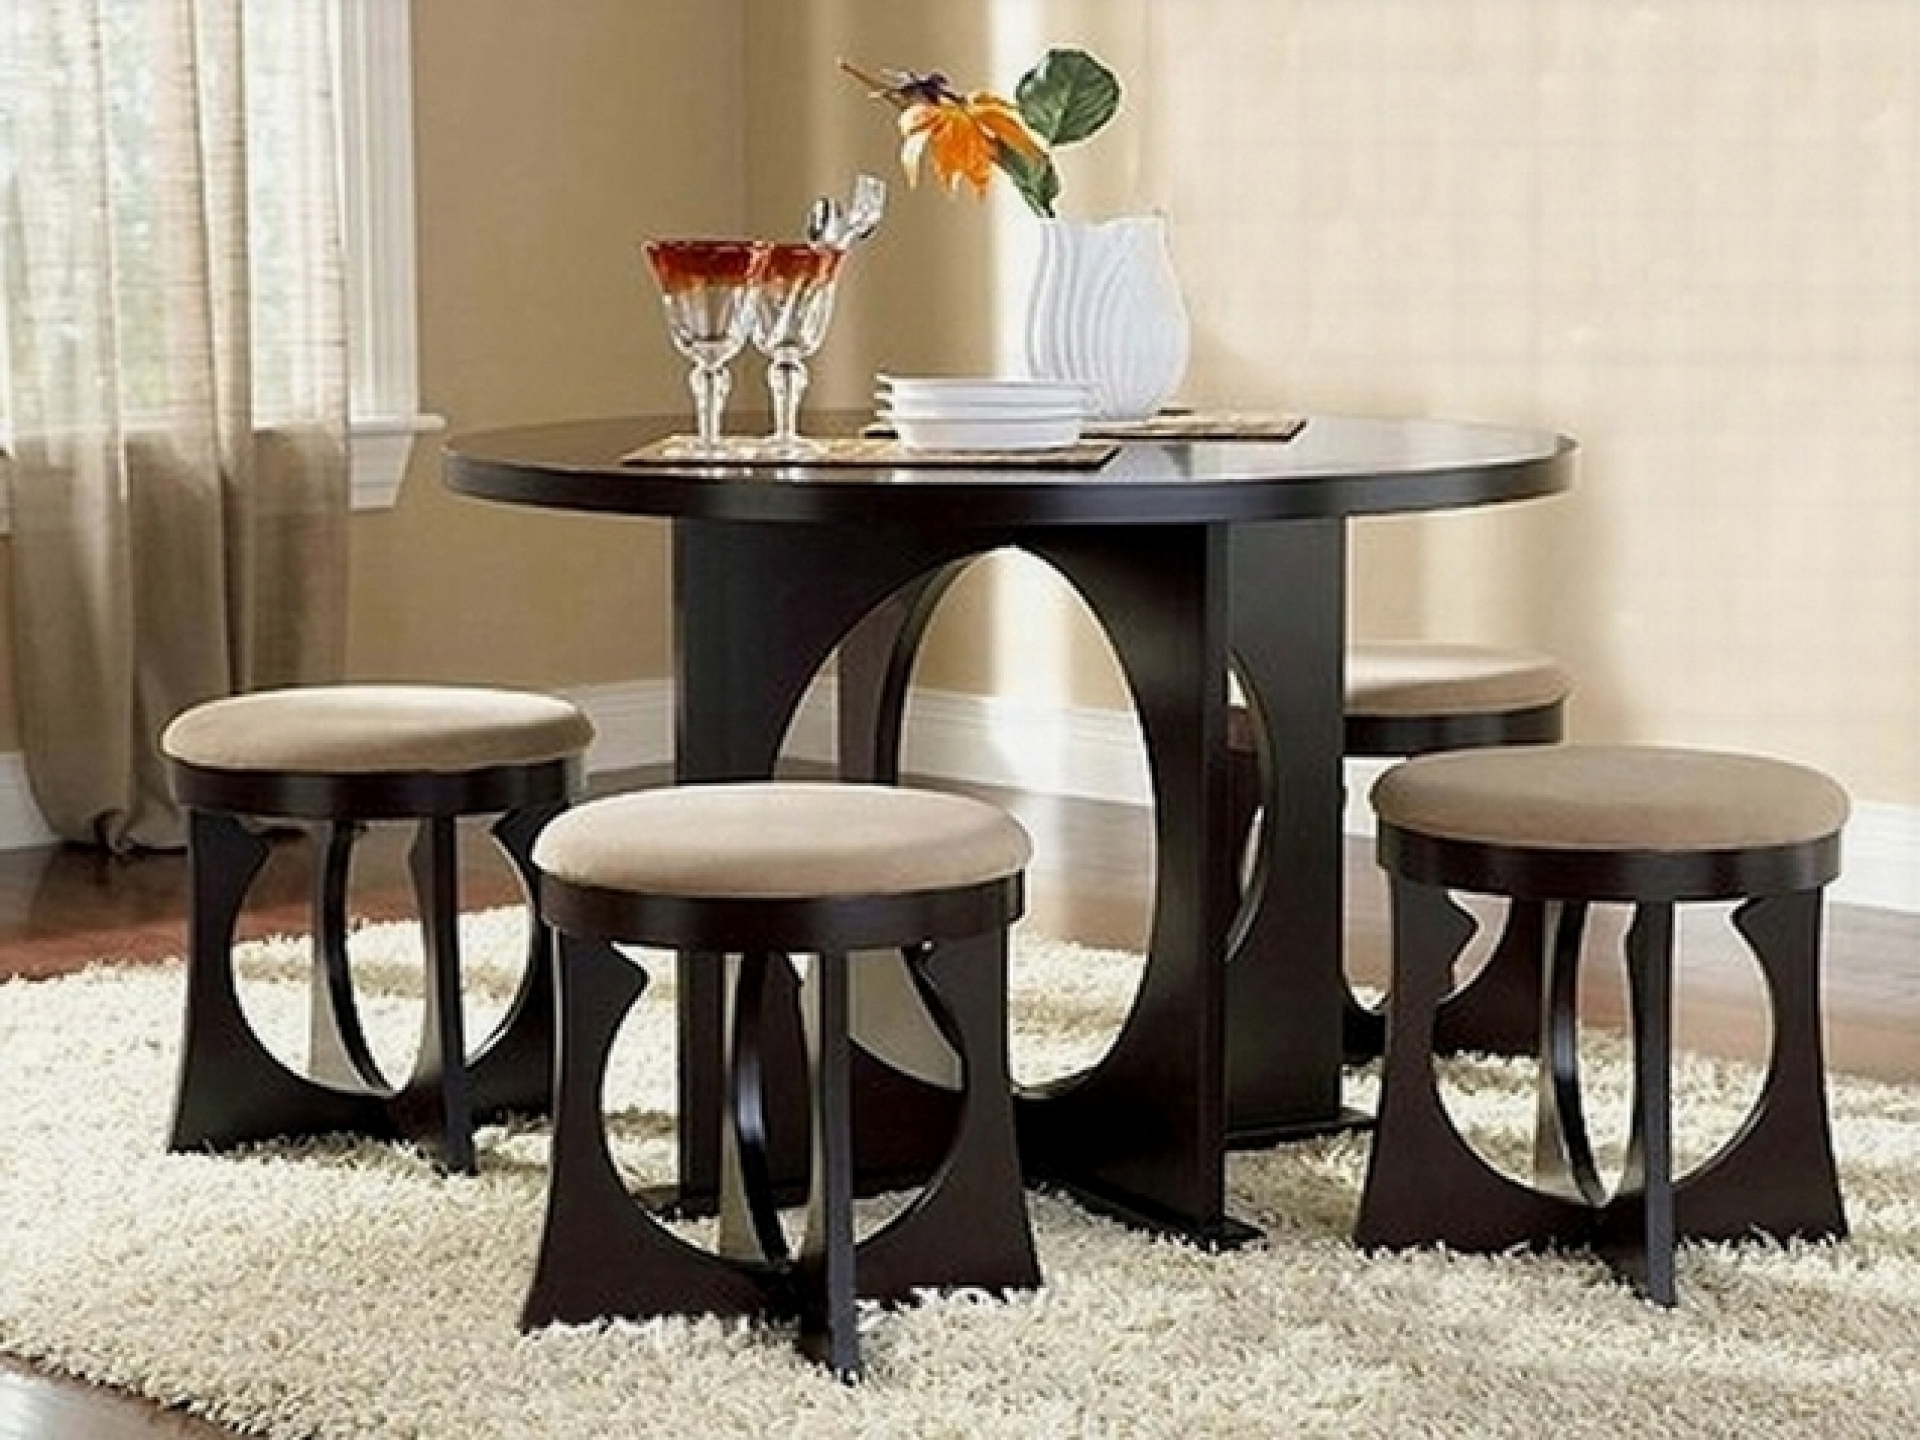 Small Dining Tables Inside 2018 Dining Room Dining Table And Chairs For Small Rooms Compact Dining (View 19 of 25)